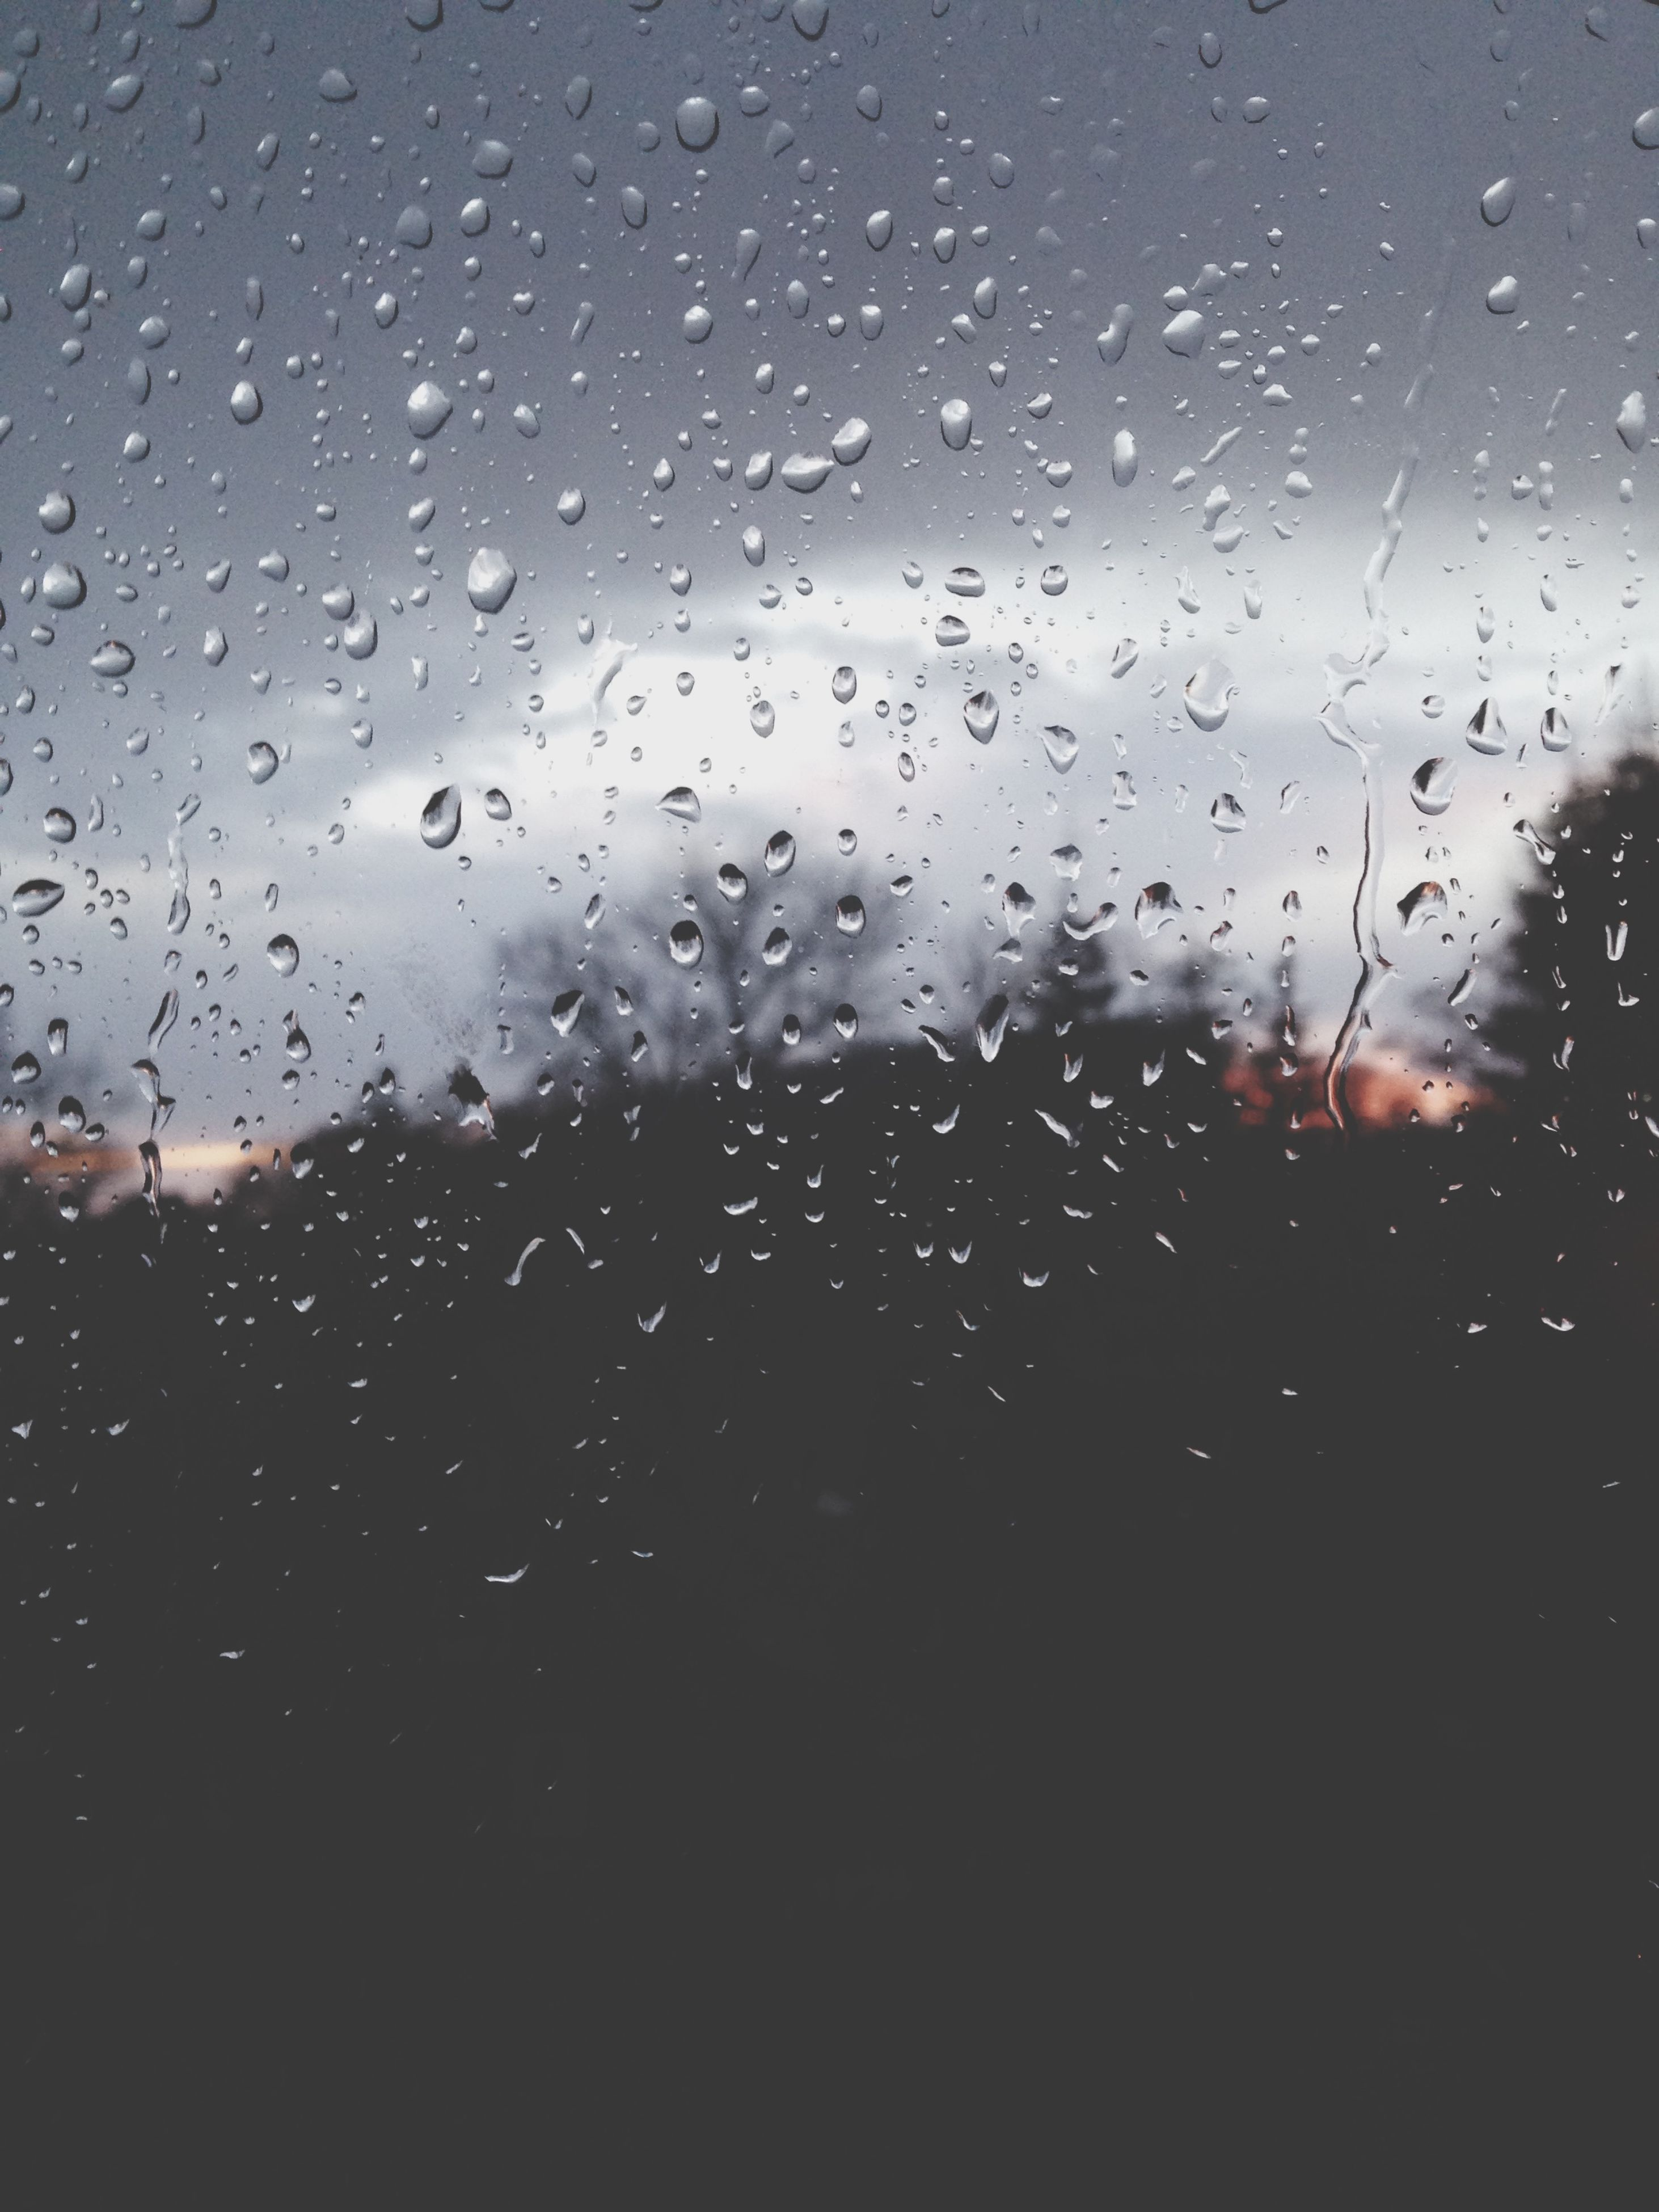 drop, wet, window, rain, transparent, weather, water, glass - material, indoors, raindrop, sky, season, backgrounds, glass, full frame, focus on foreground, silhouette, dusk, nature, no people